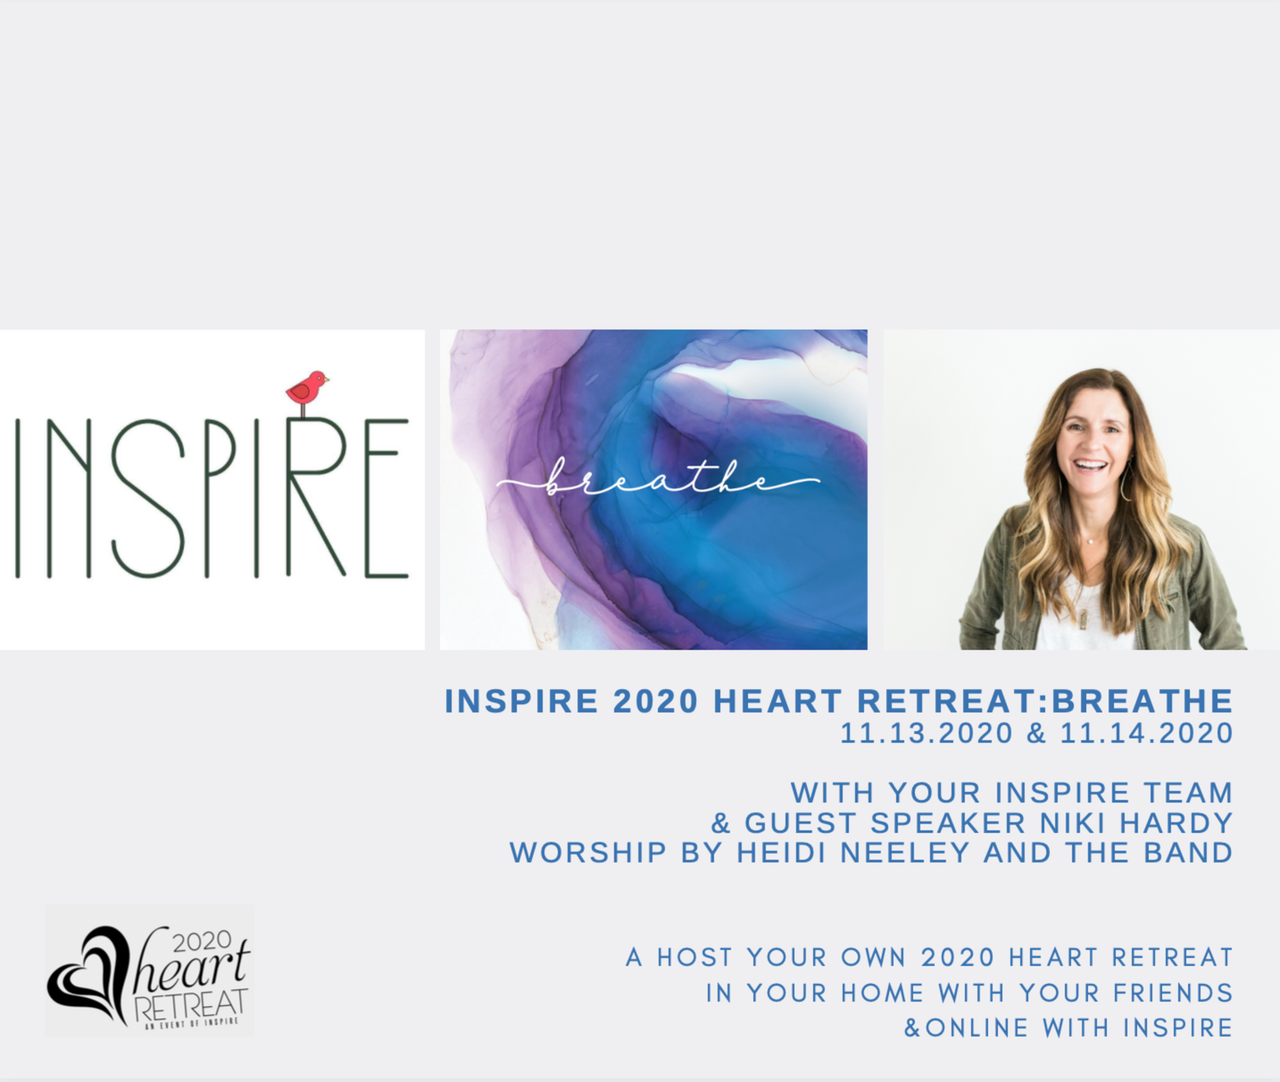 INSPIRE 2020 Heart Retreat:  Breathe